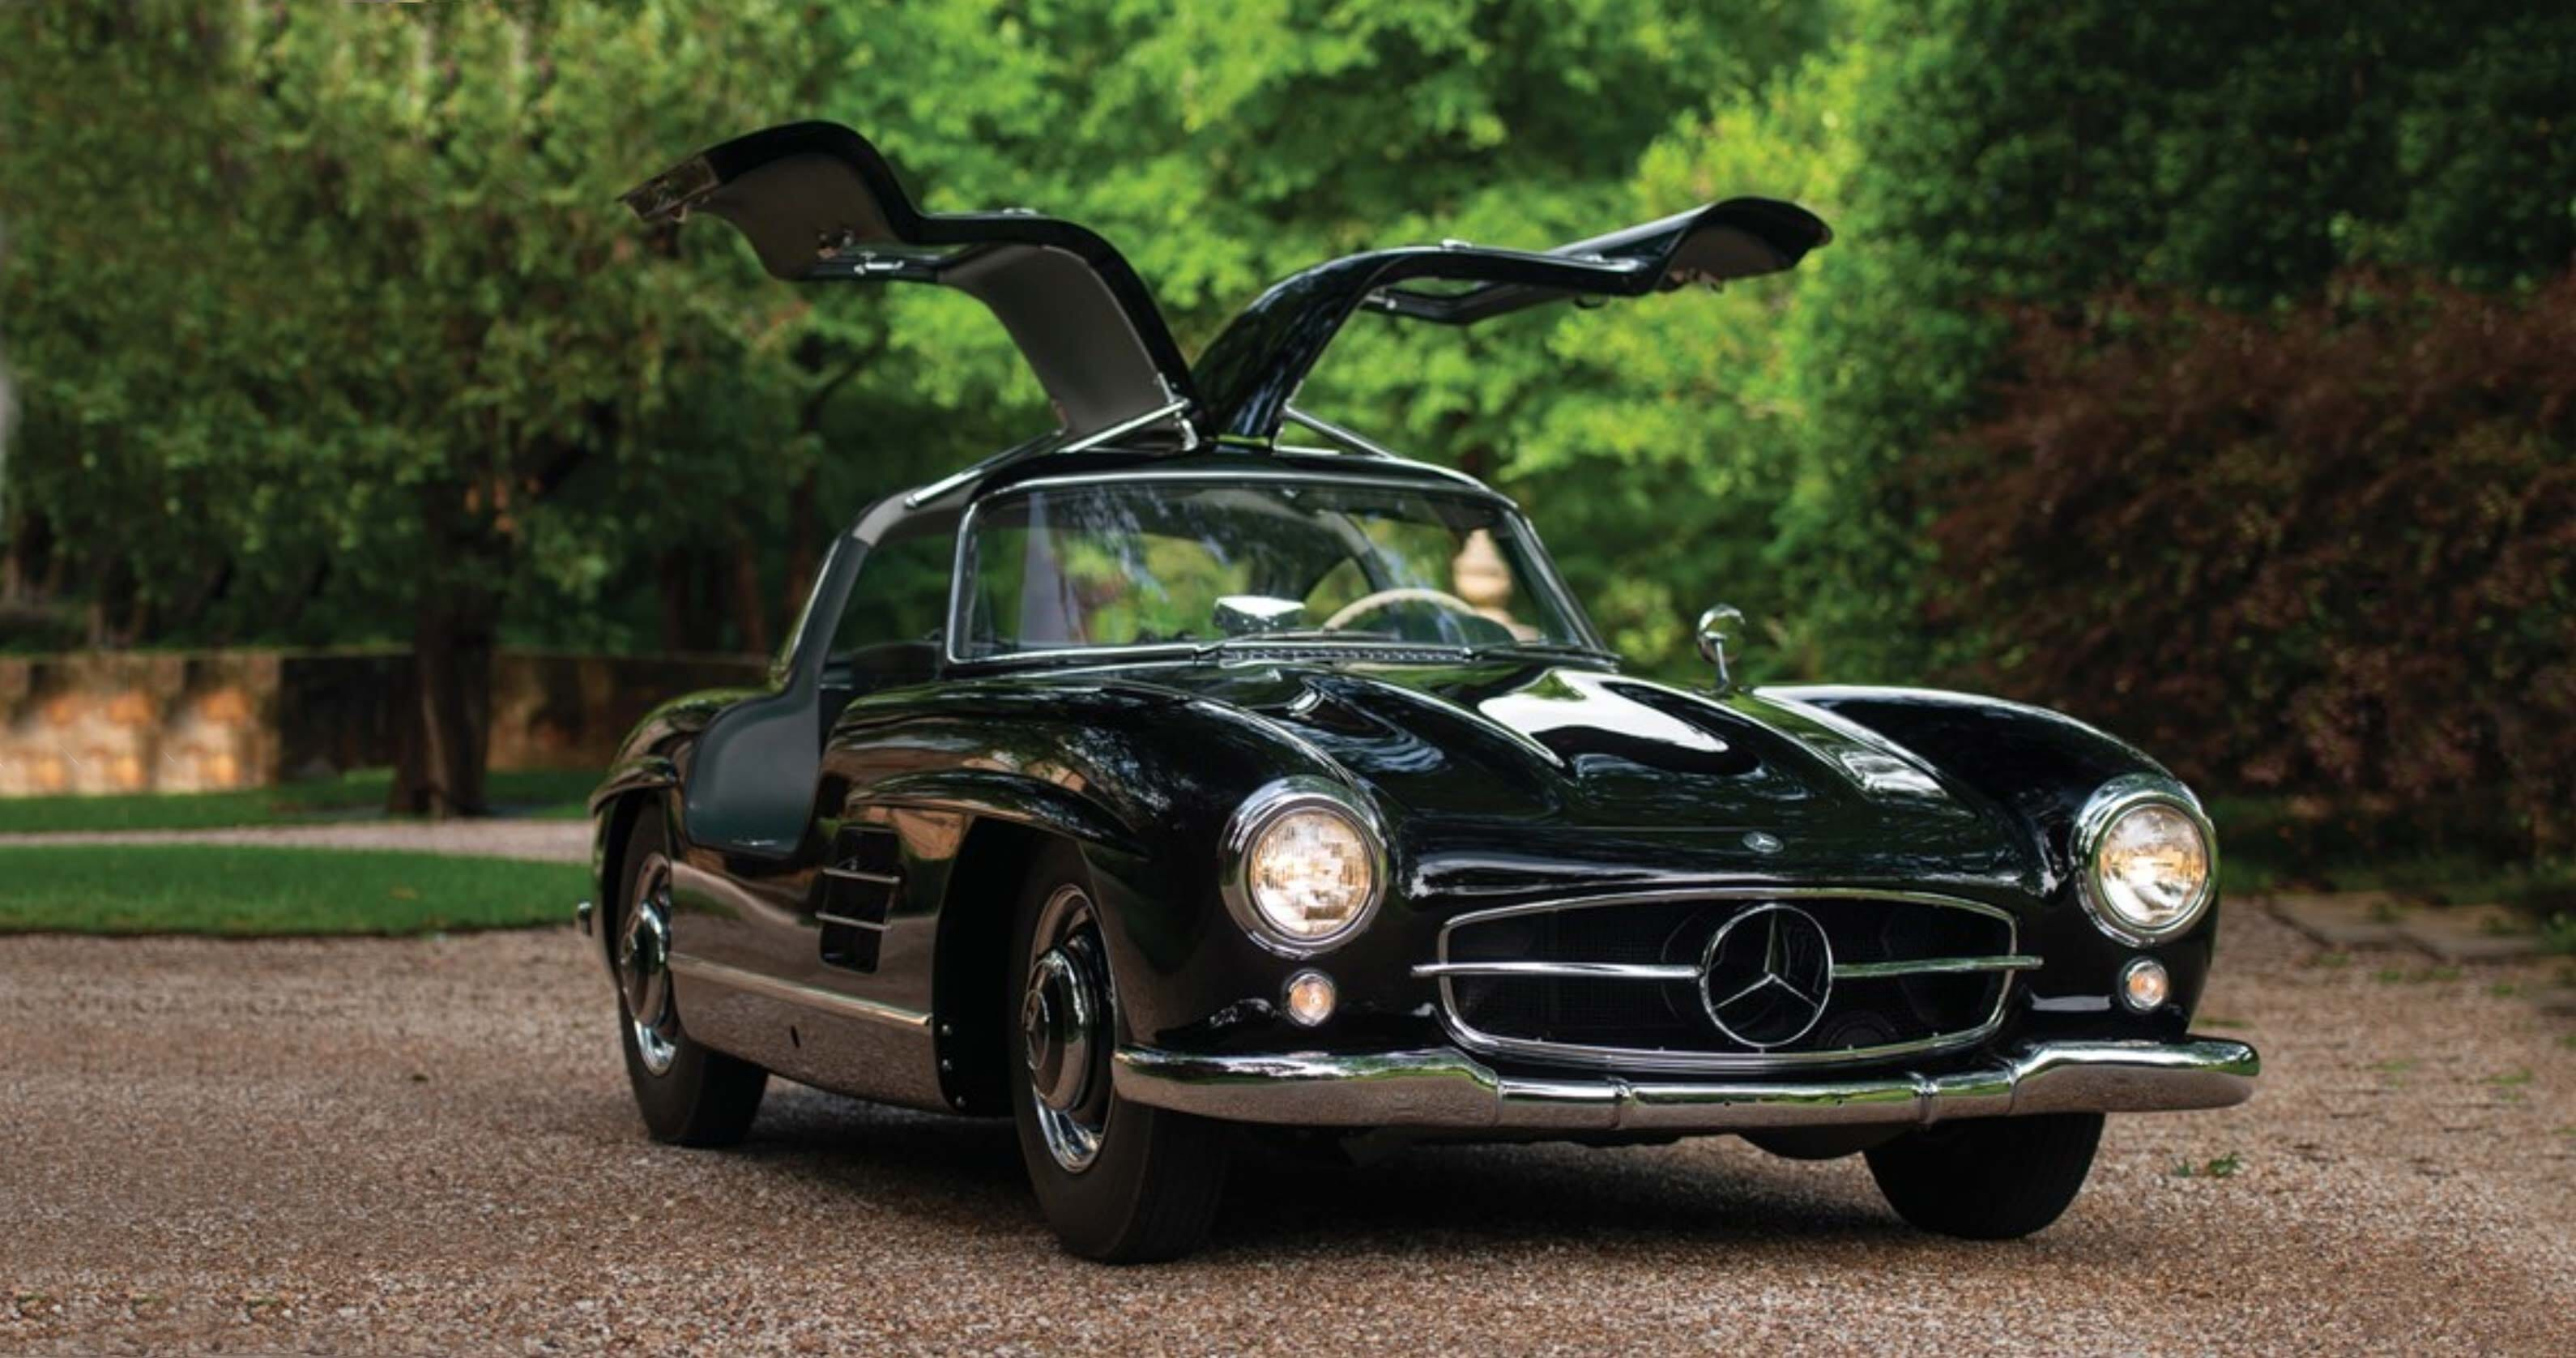 Classic Car Find Of The Week: 1954 Mercedes Benz 300 SL Gullwing